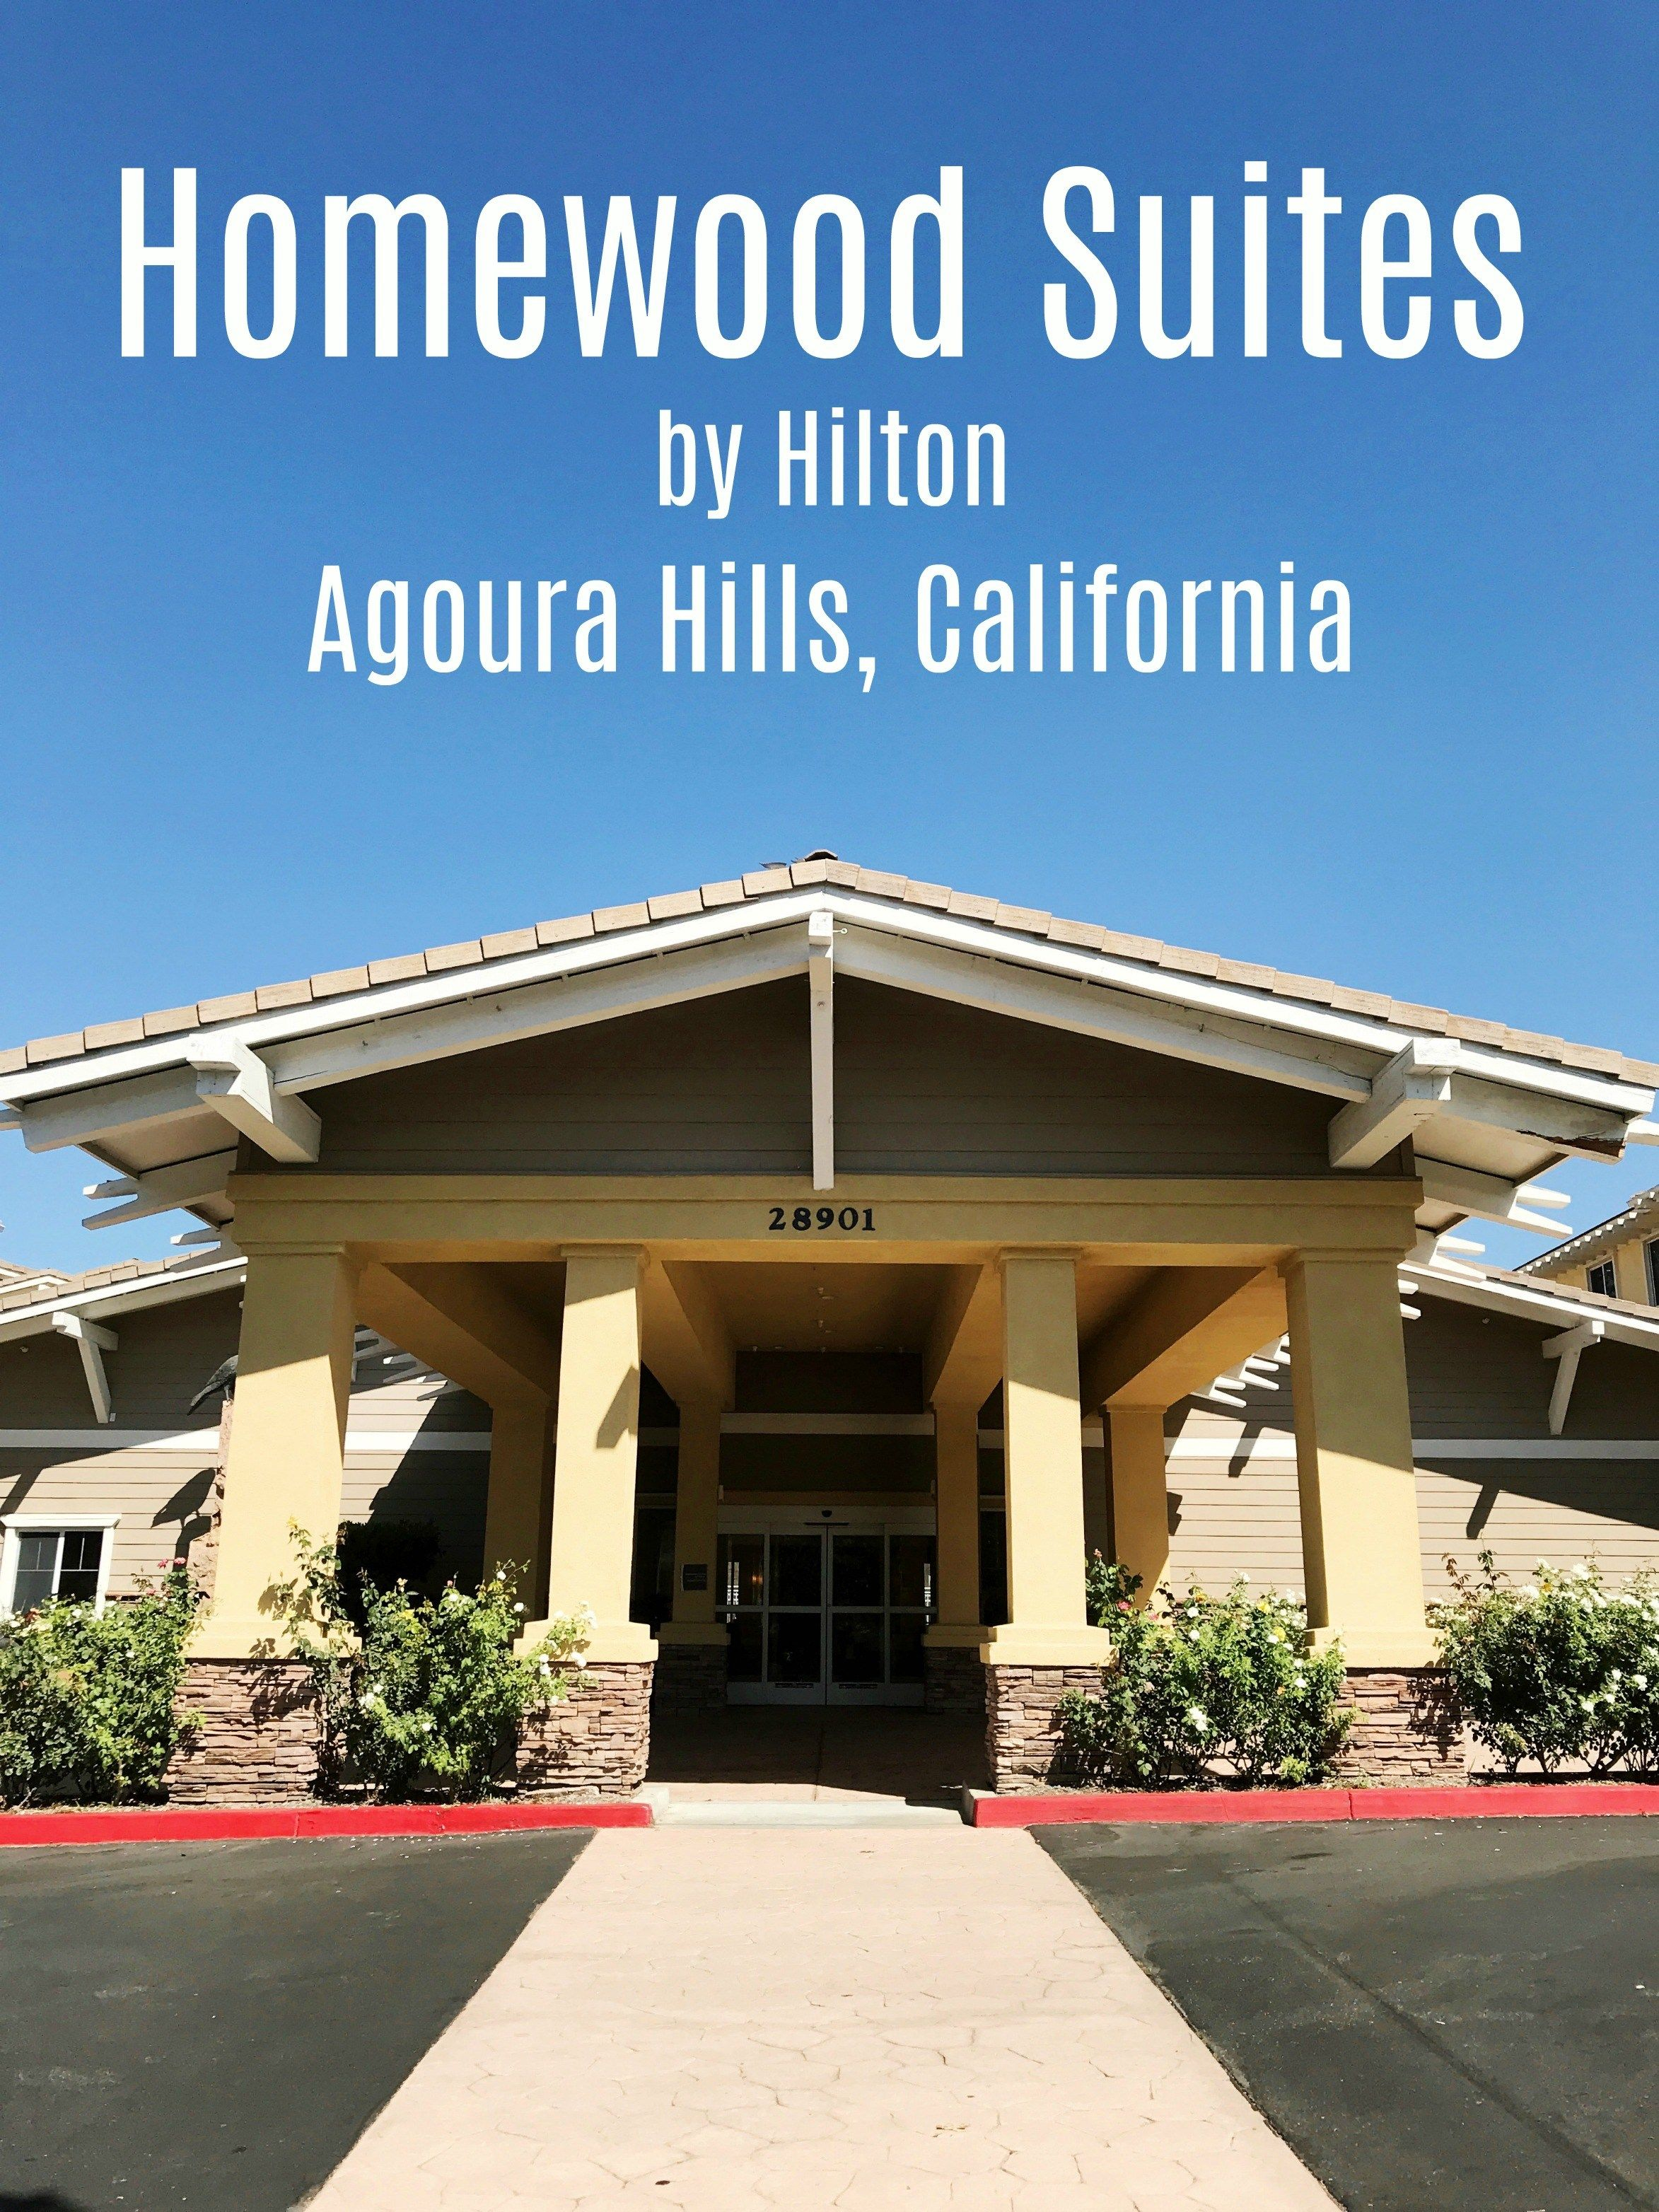 Homewood Suites Agoura Hills Simple Sojourns Ad Visitconejovalley Travel Southerncalifornia